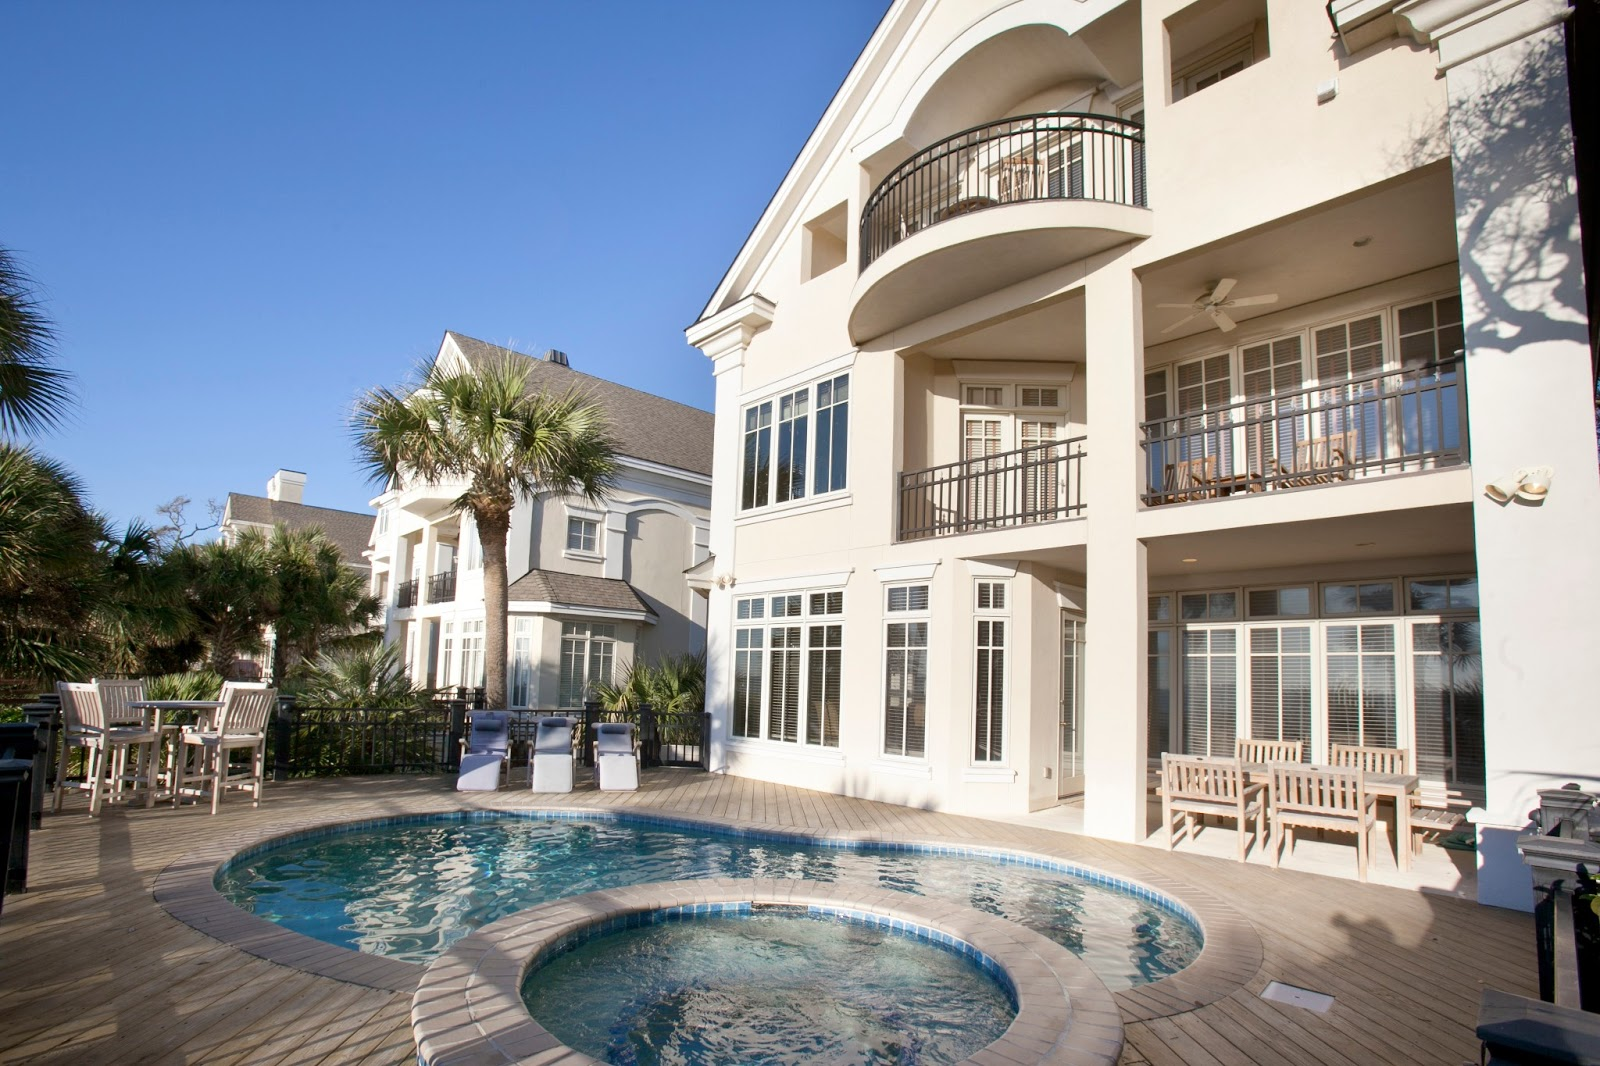 Beach Homes For Rent Hilton Head Island